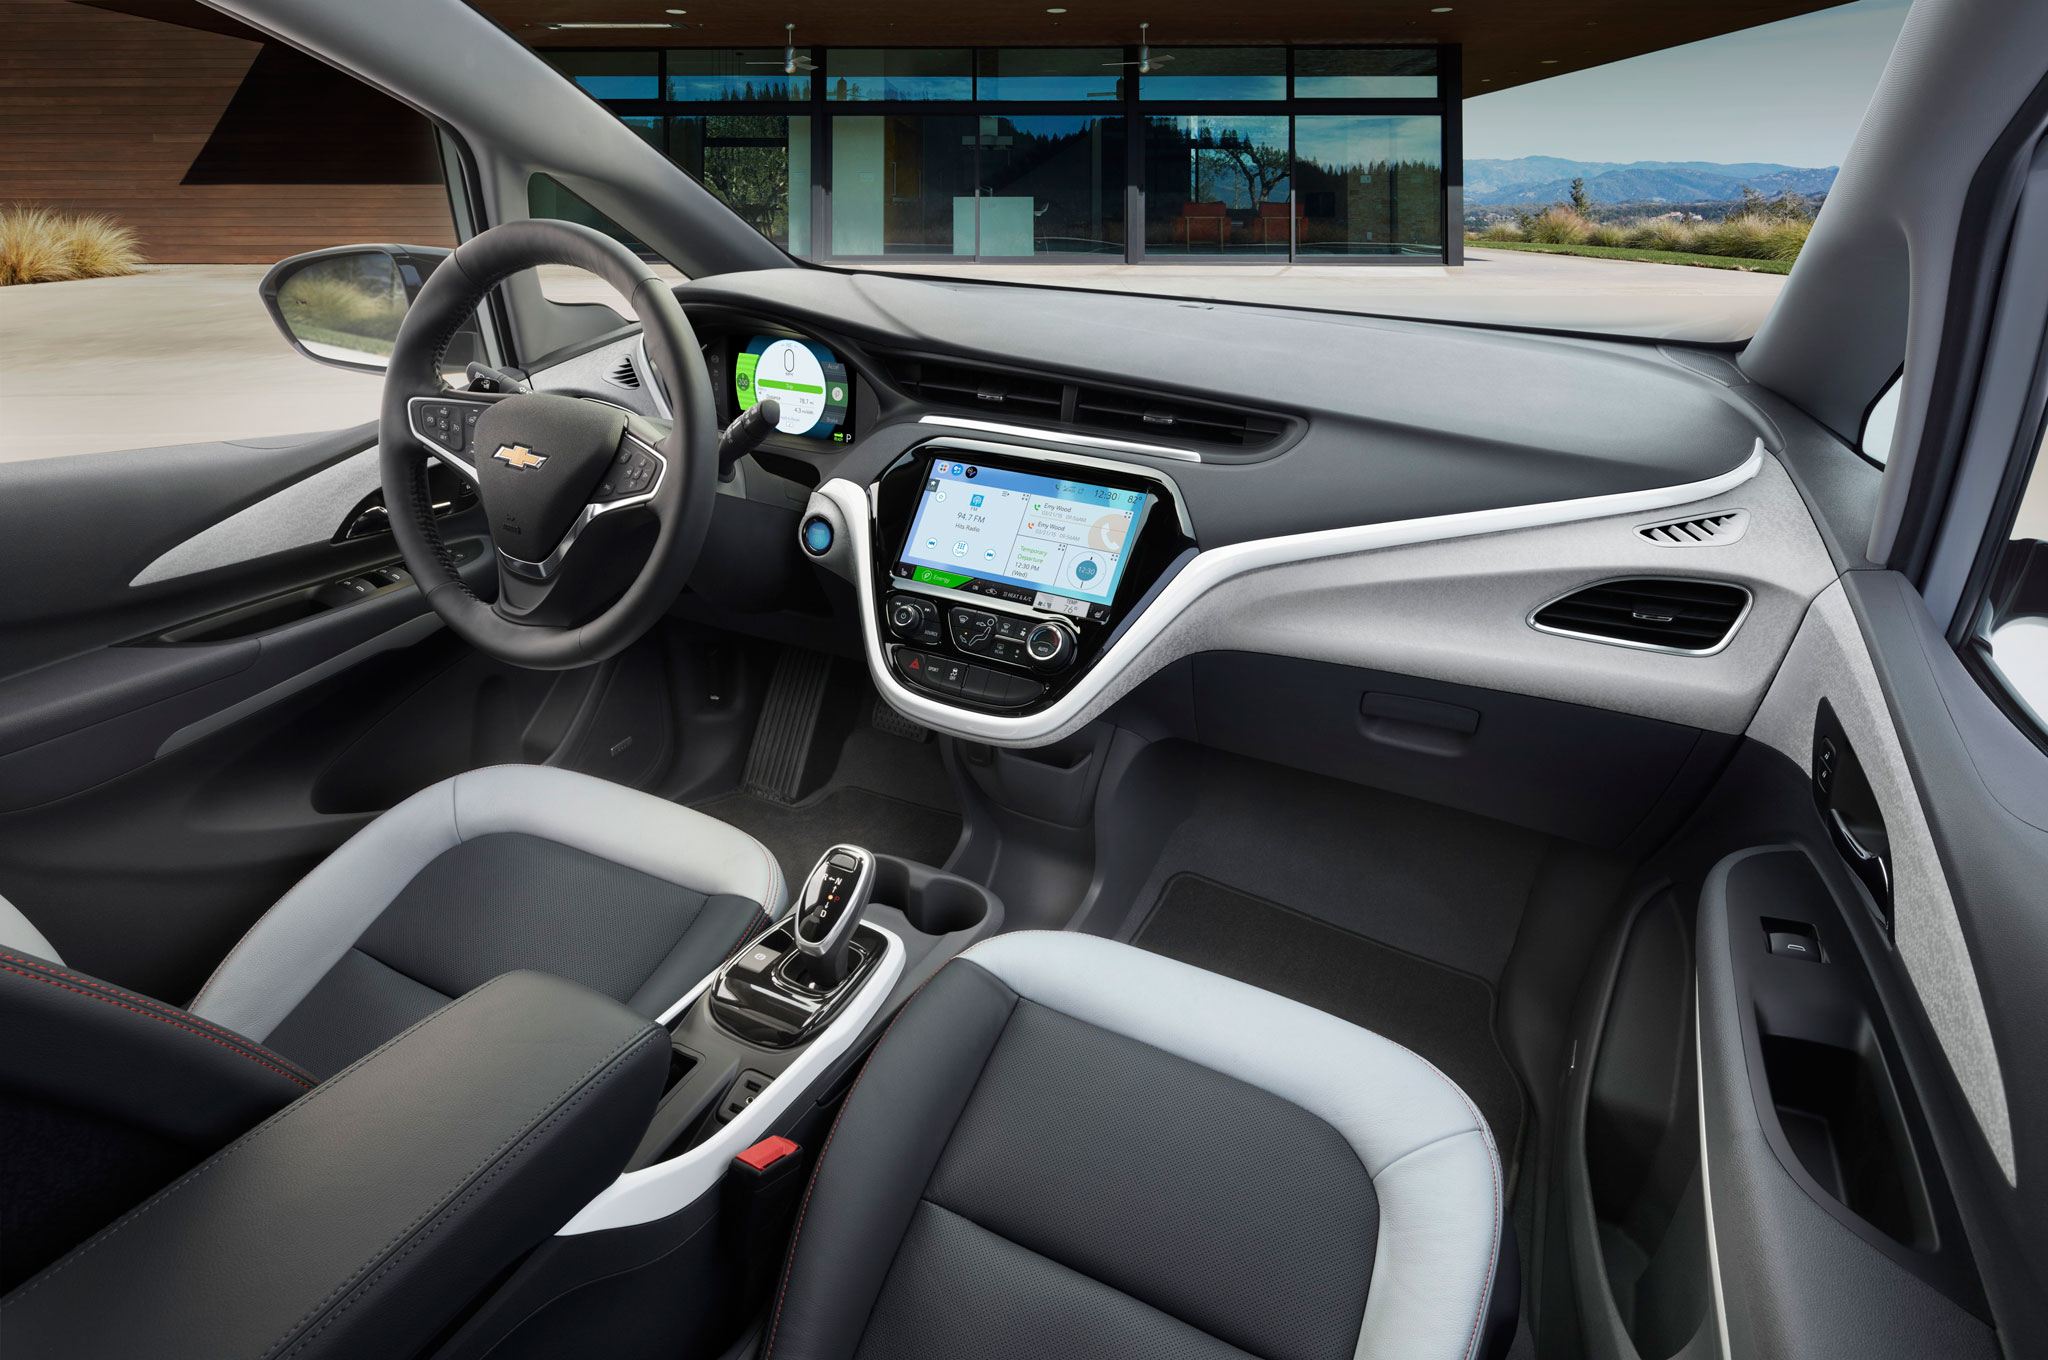 2017 Chevrolet Bolt EV Quick Drive | Automobile Magazine on 01 suburban wiring diagram, 01 camry wiring diagram, 01 tundra wiring diagram,